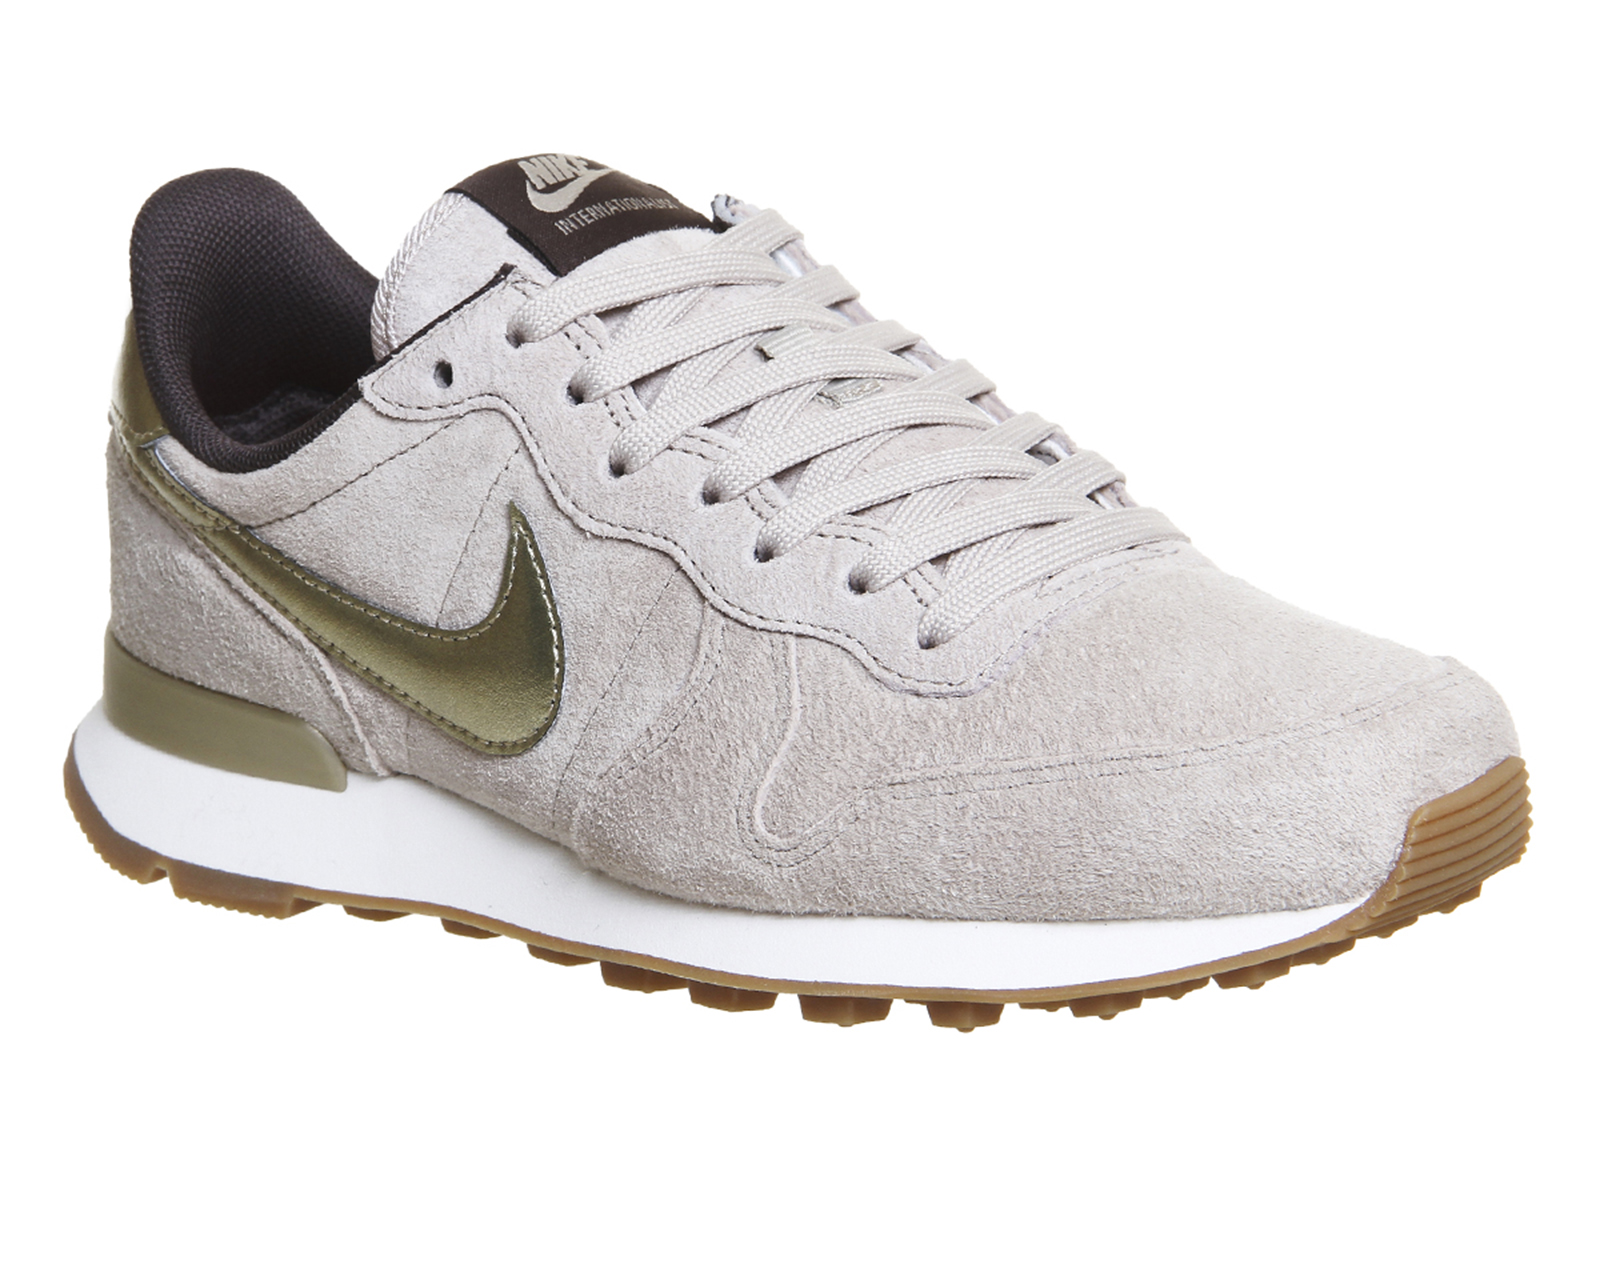 low priced 416e0 5cf3e Nike Nike Internationalist String Metallic Gold Grain - Hers trainers